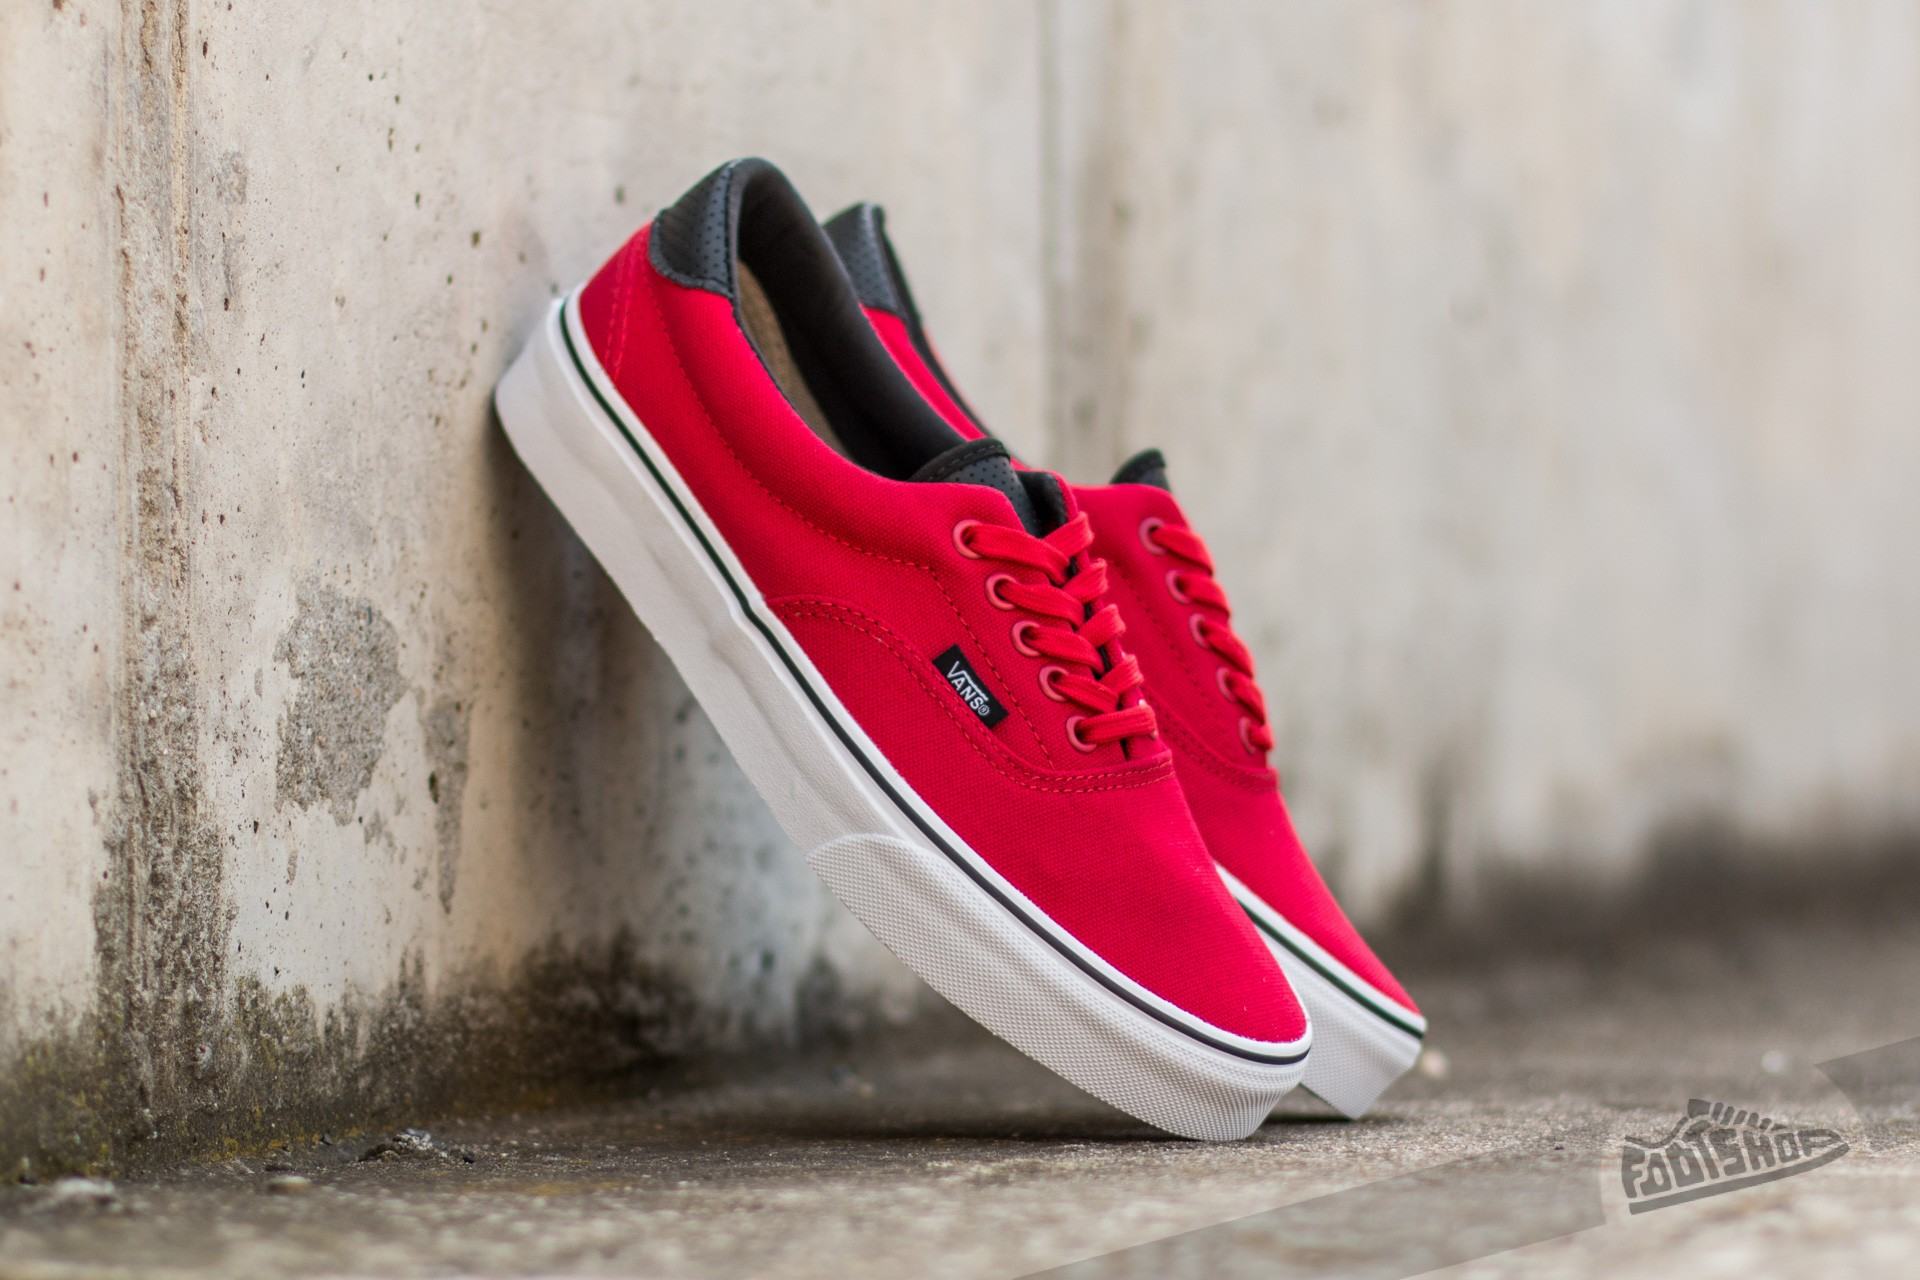 796947eb813a96 Vans Era 59 (C P) Racing Red  Black